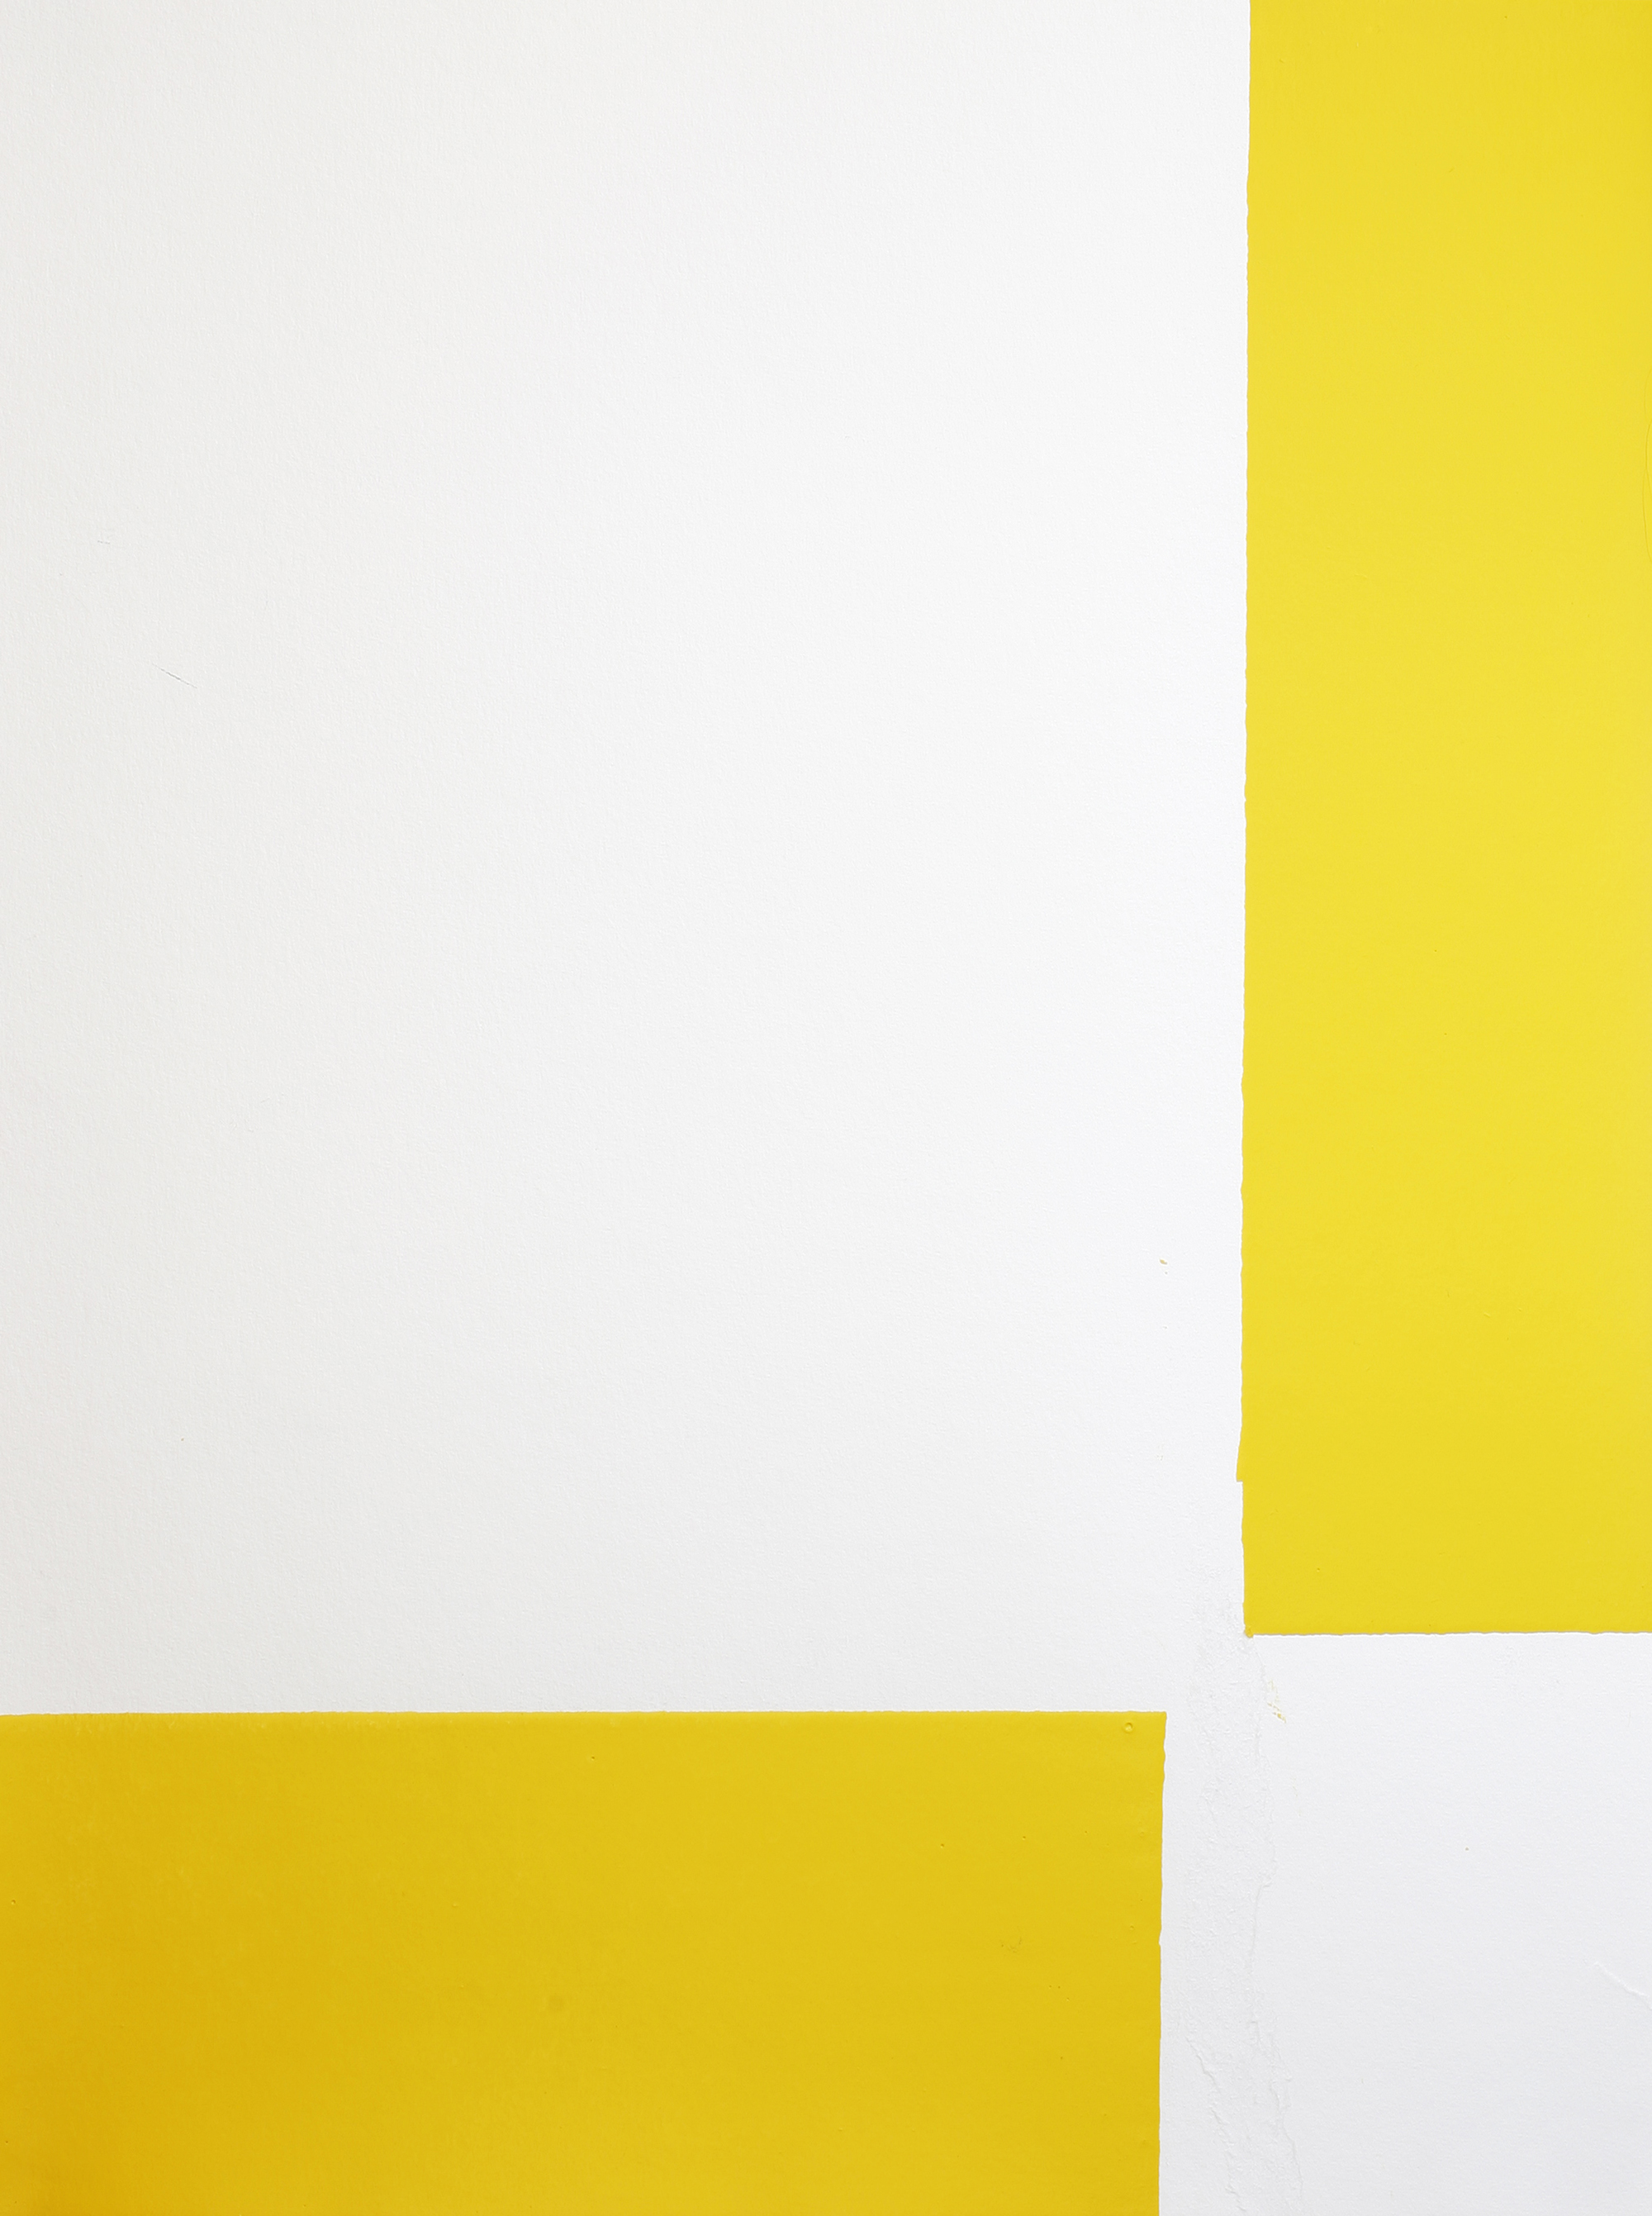 Untitled, 2008, lacquer on paper